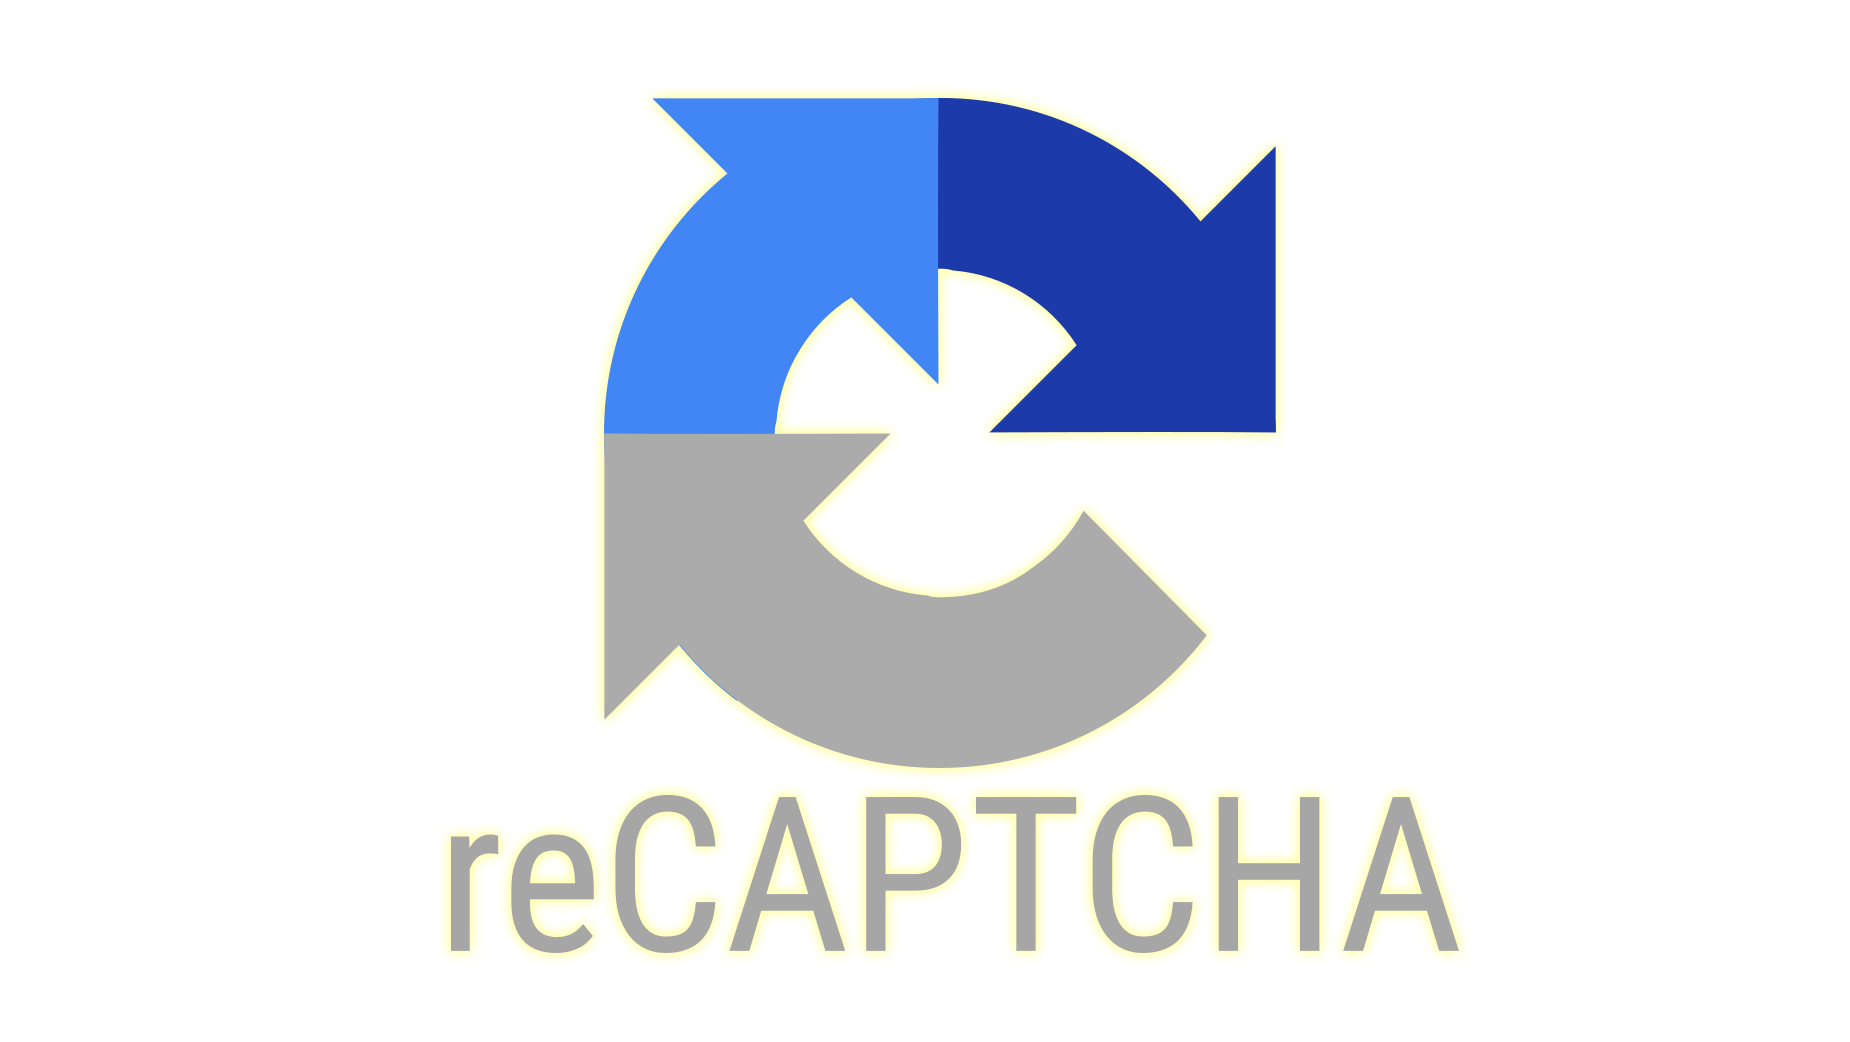 Google No Captcha Invisible Recaptcha First Experience Results